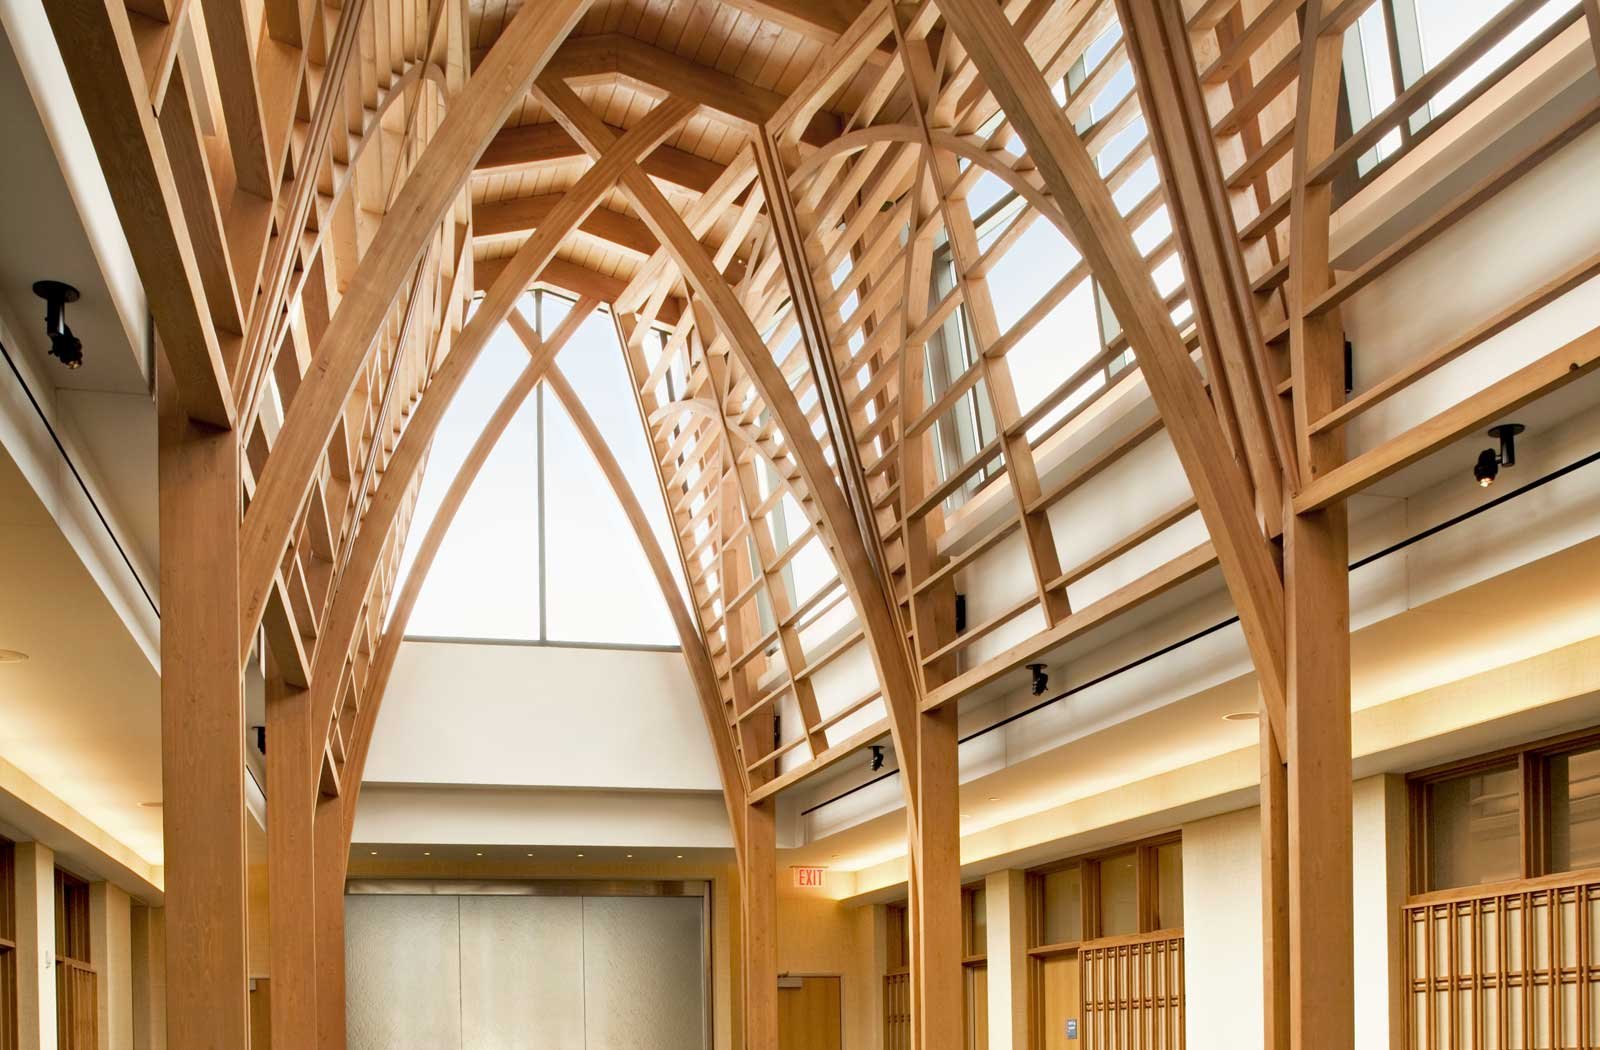 Japan Cross Laminated Timber (CLT) Market Growth Augmented by Shift Toward Wood-Based Construction – IMARC Group 1